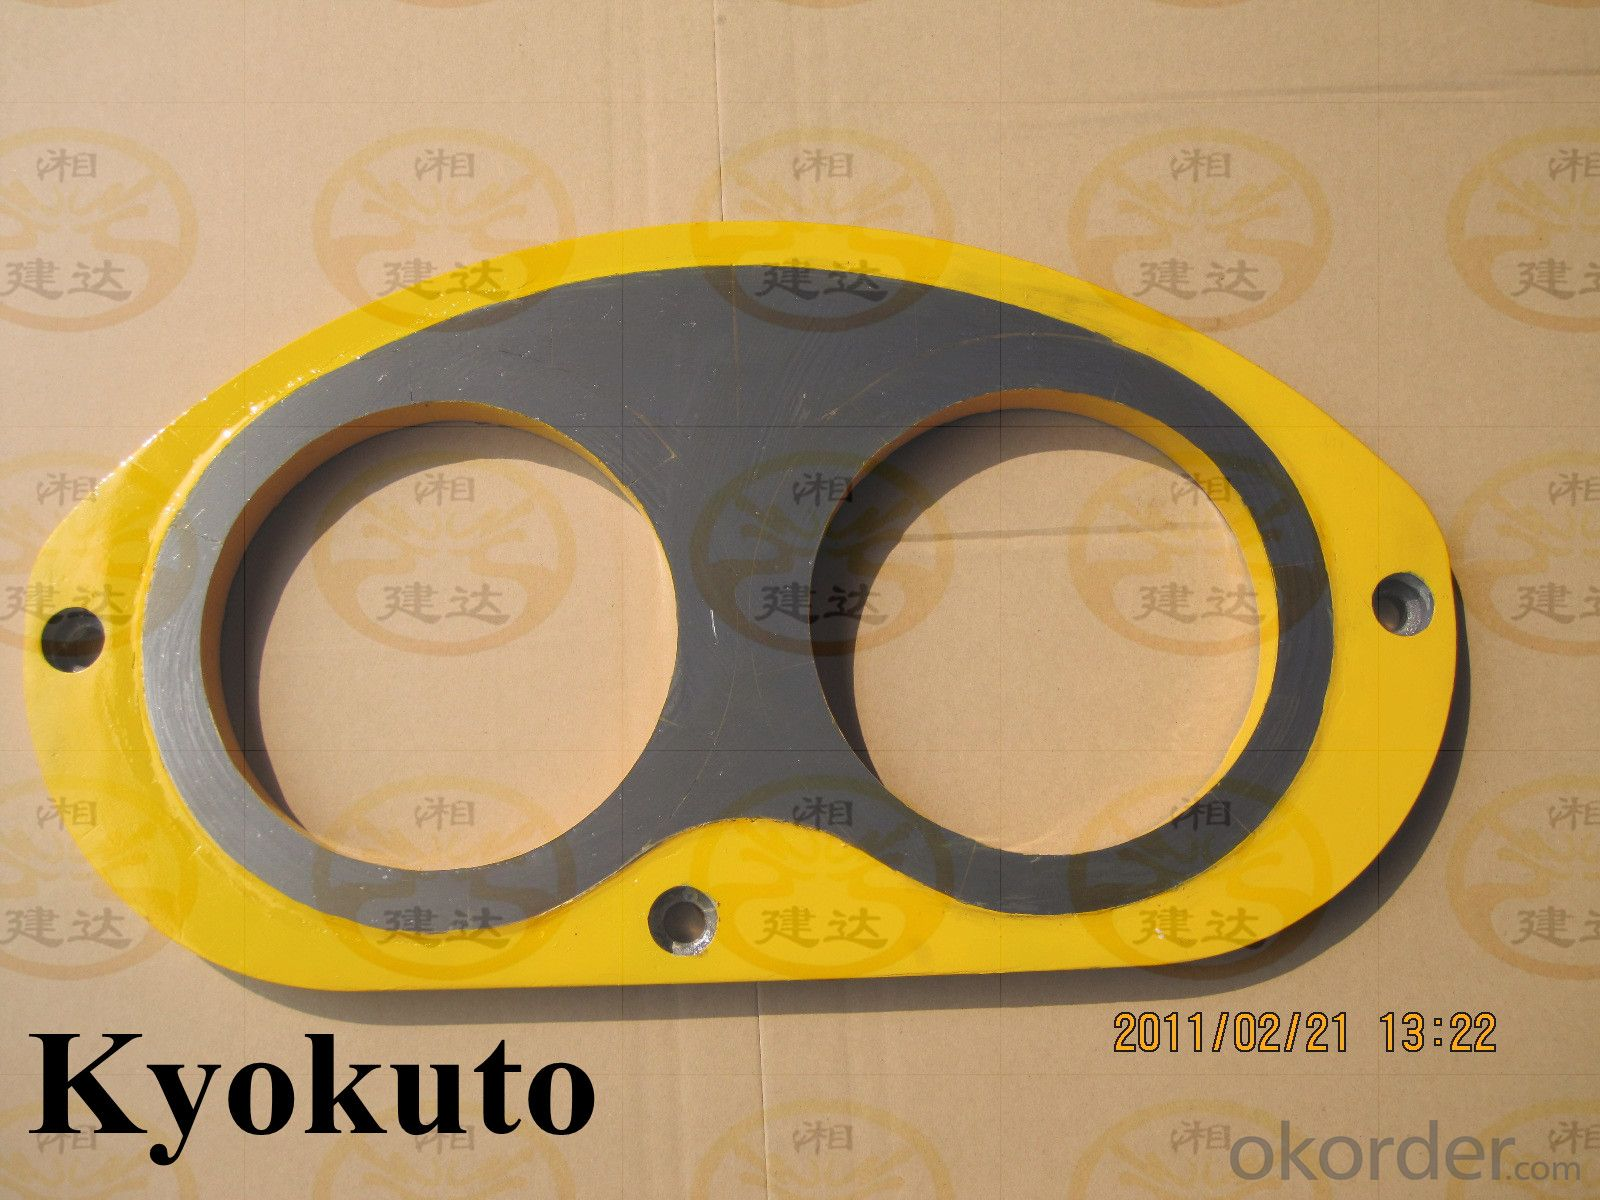 Spectacle wear plate  for Kyokuto concrete pump